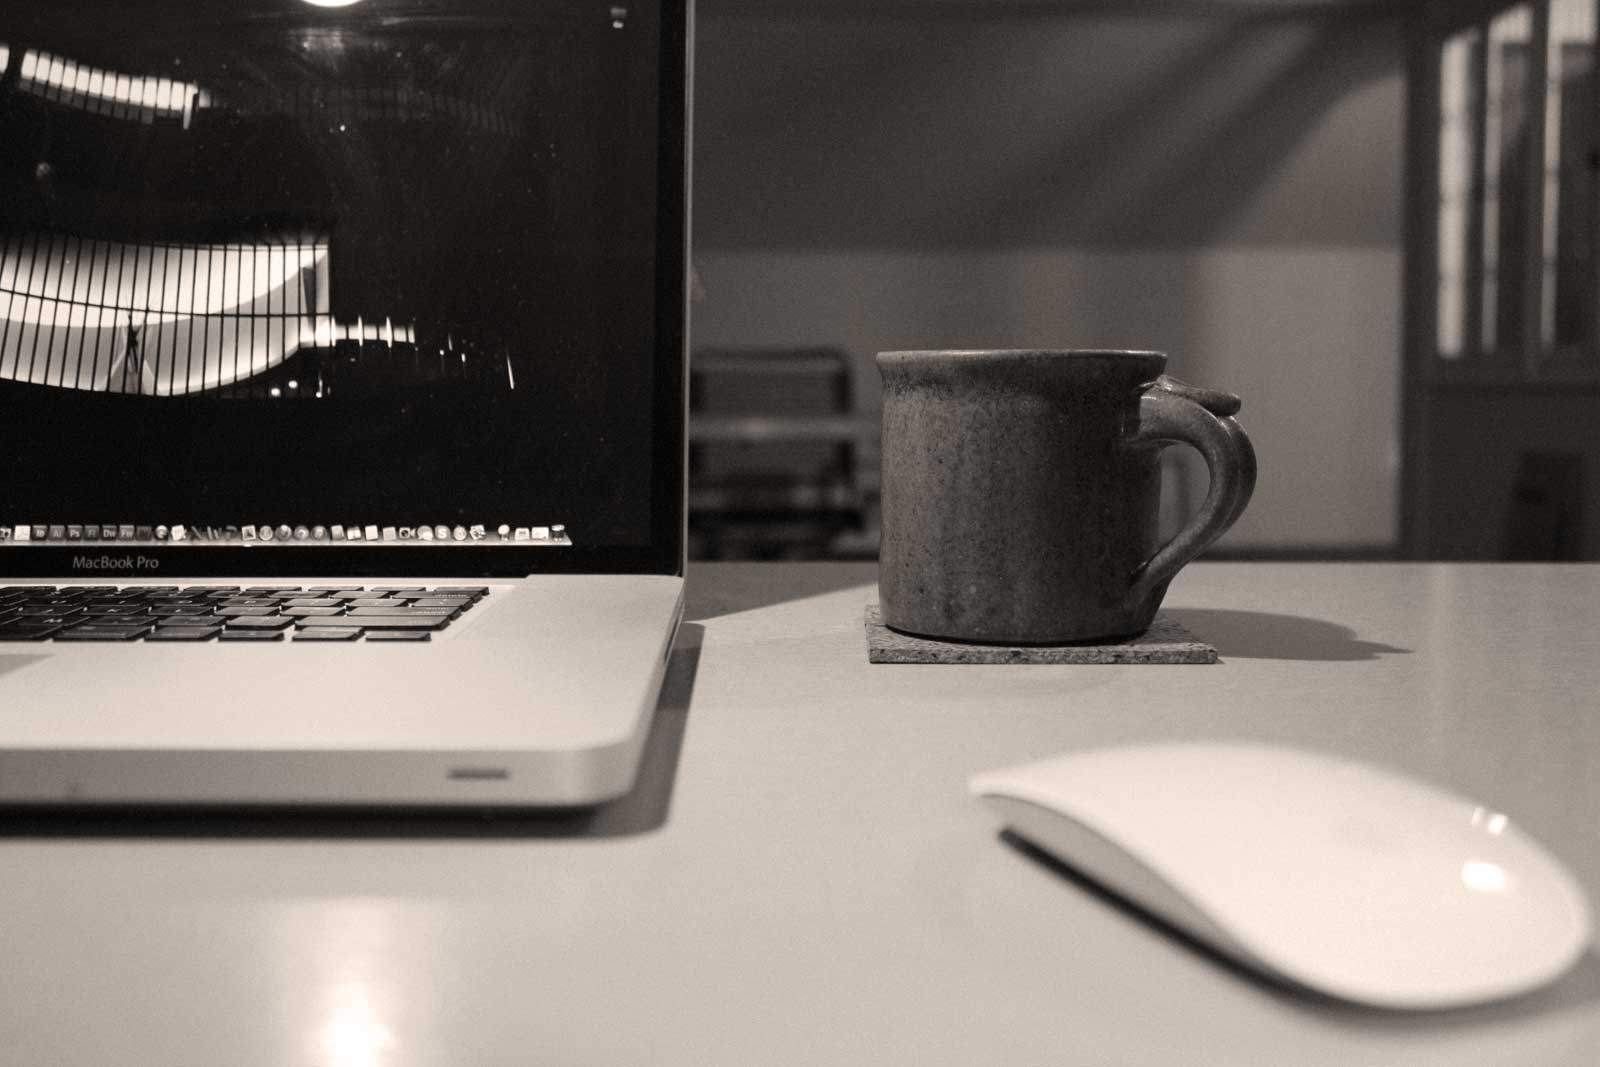 Coffee & mouse